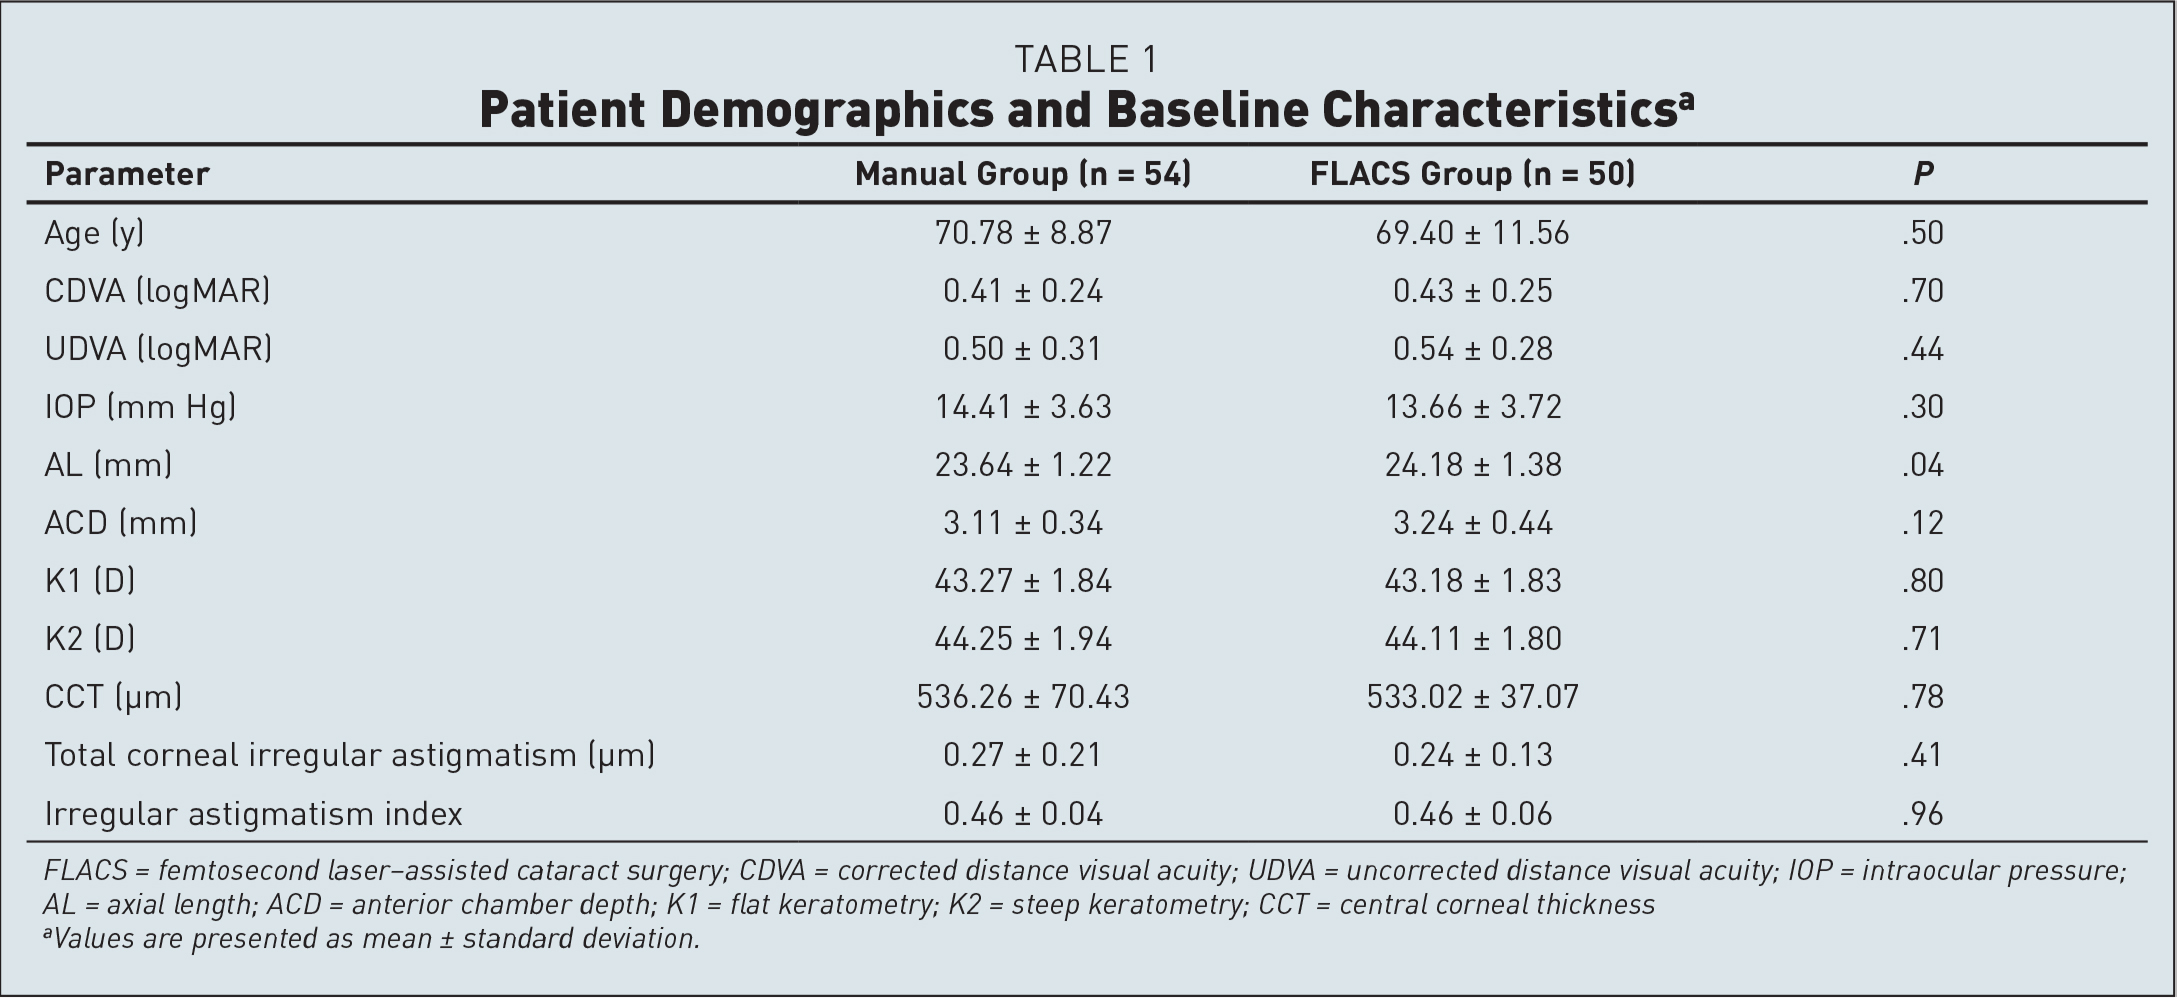 Patient Demographics and Baseline Characteristicsa